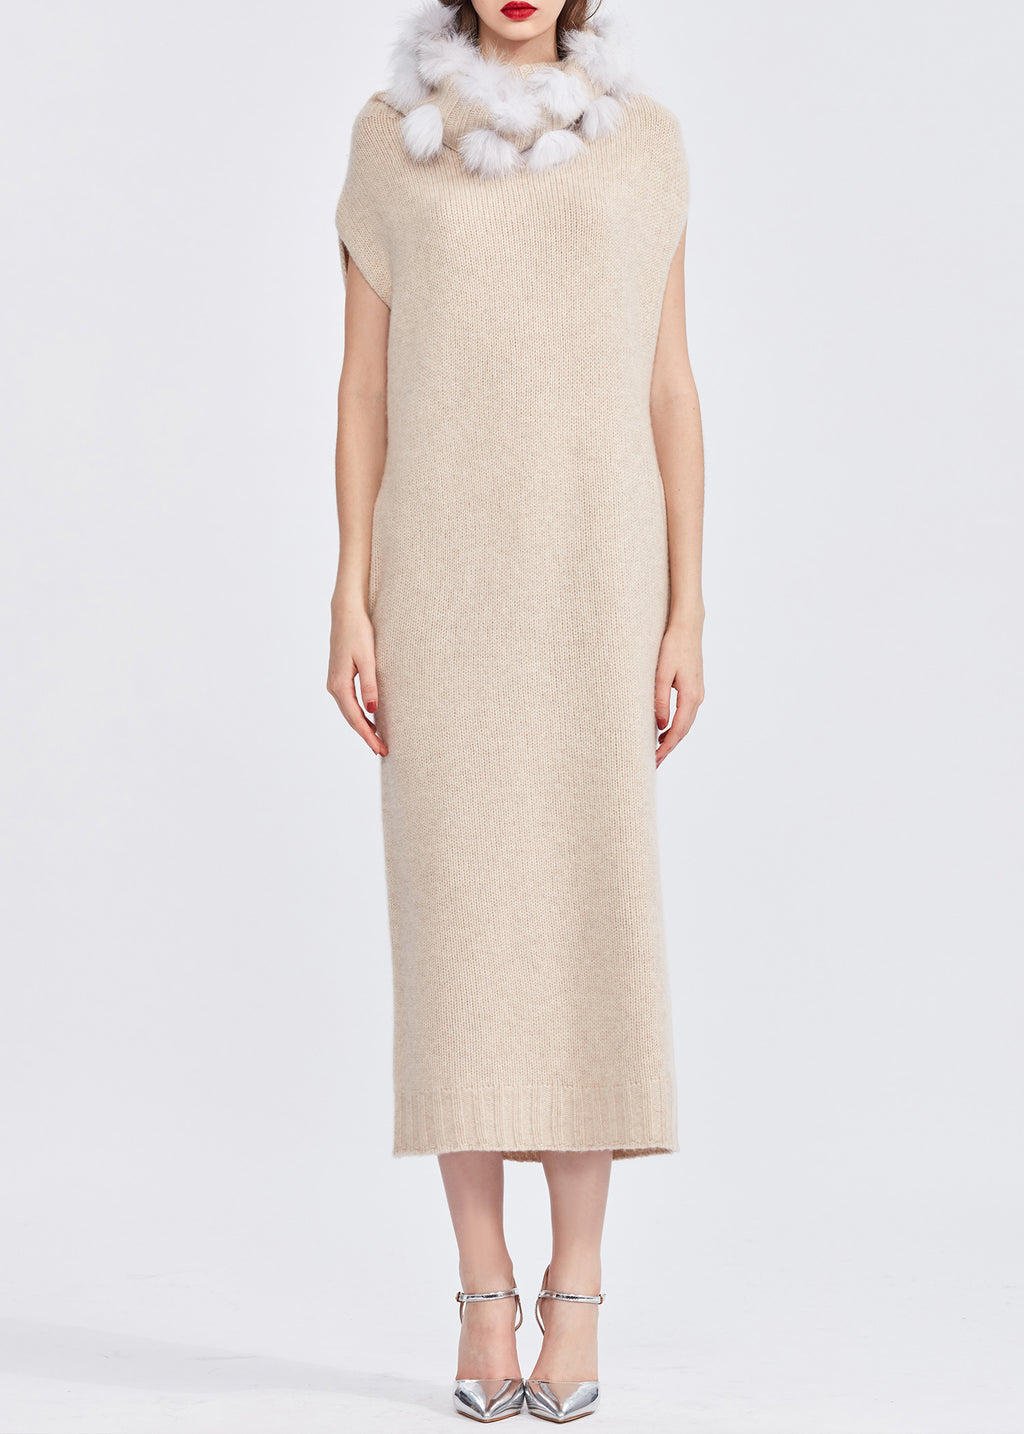 Turtleneck Sleeveless Cashmere Dress with Faux Fur Pom Pom